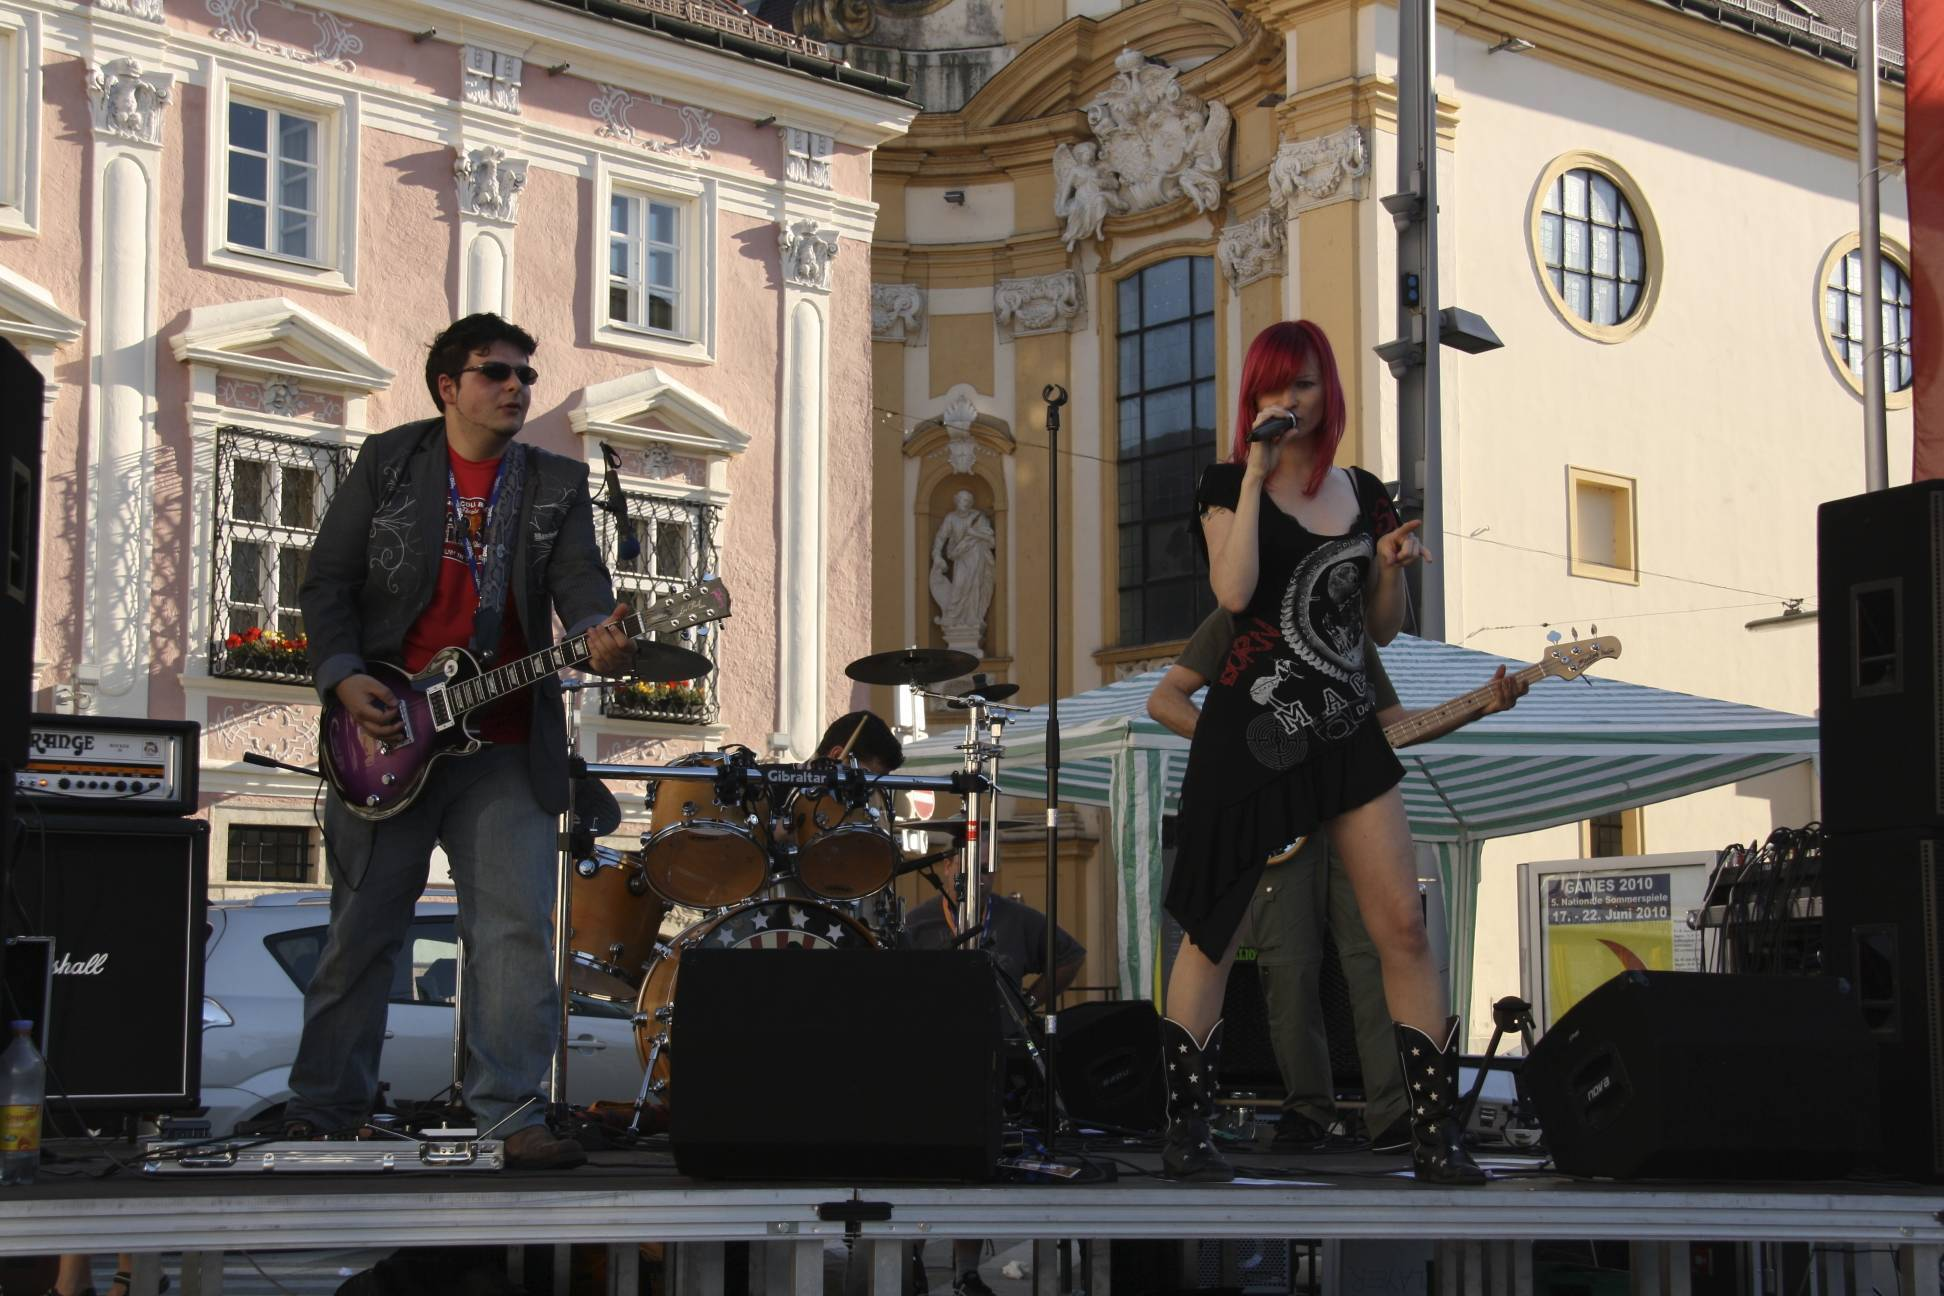 Upcoming show: Konzert am Rathausplatz